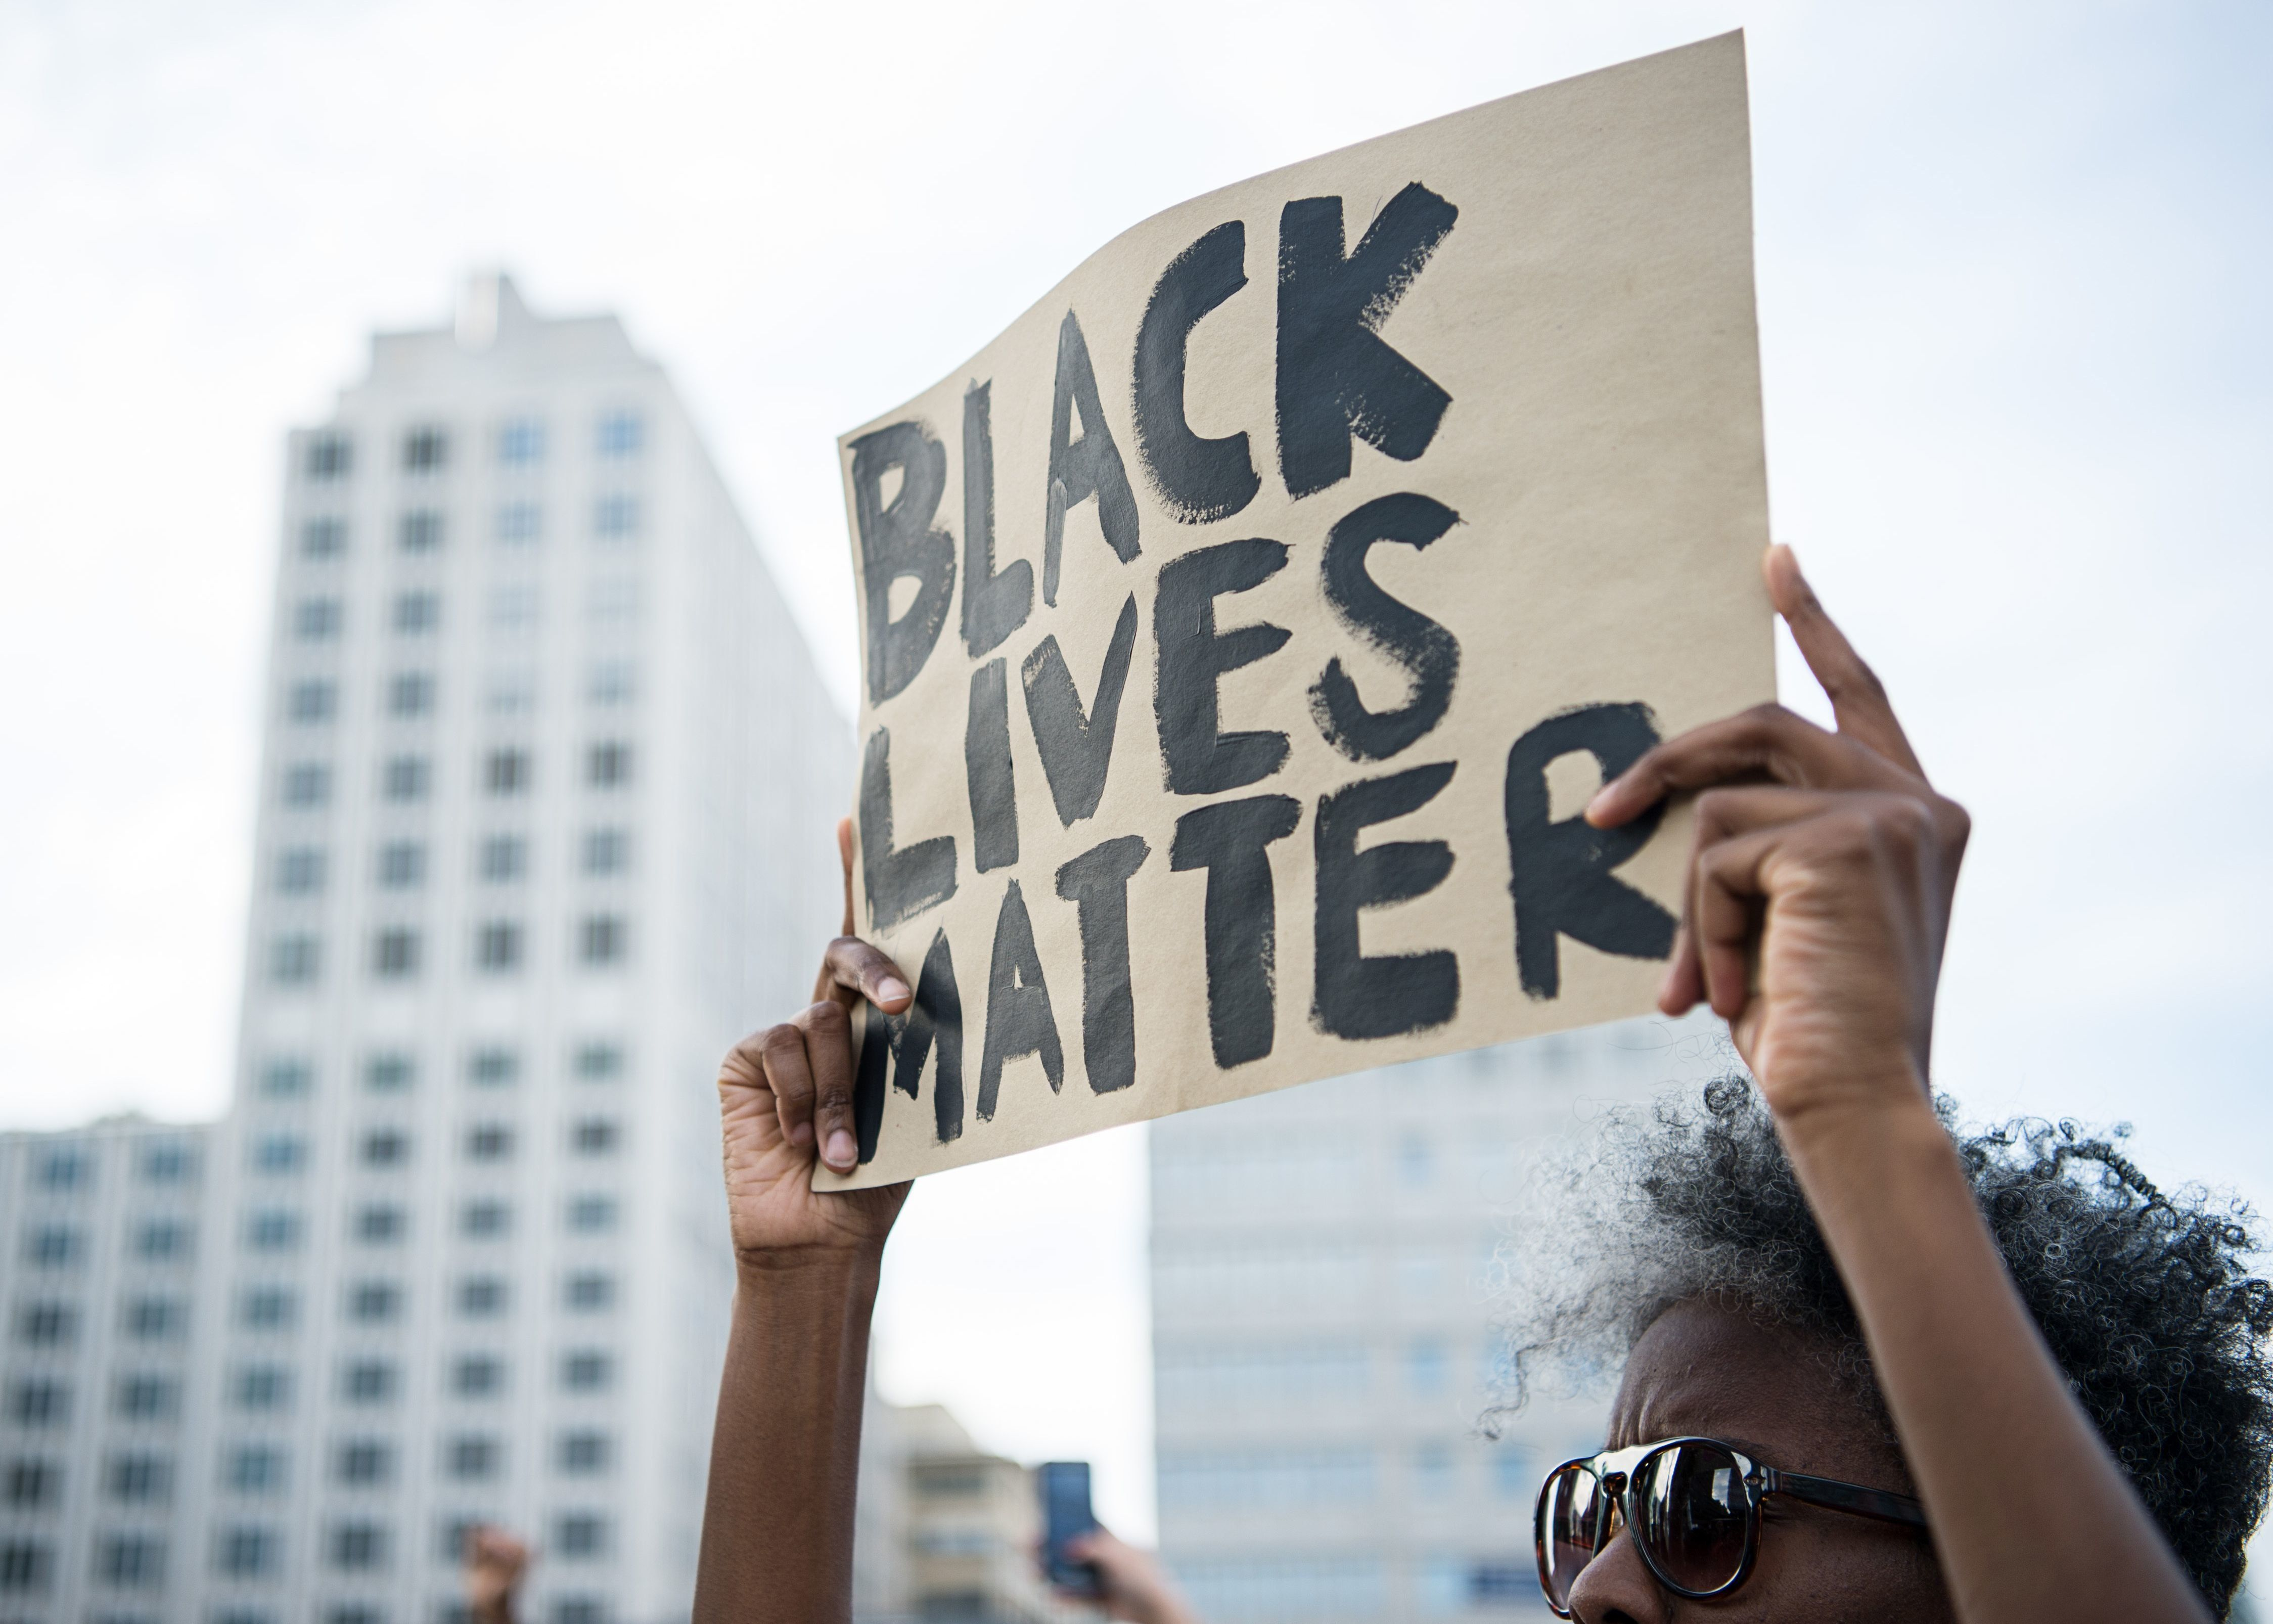 A protestor holds up a sign reading 'Black Lives Matter' during a demonstration in Berlin, on July 10, 2016 with the motto 'Black Lives Matter - No Justice = No Peace' as protest over the deaths of two black men at the hands of police last week. / AFP / dpa / Wolfram Kastl / Germany OUT        (Photo credit should read WOLFRAM KASTL/AFP/Getty Images)